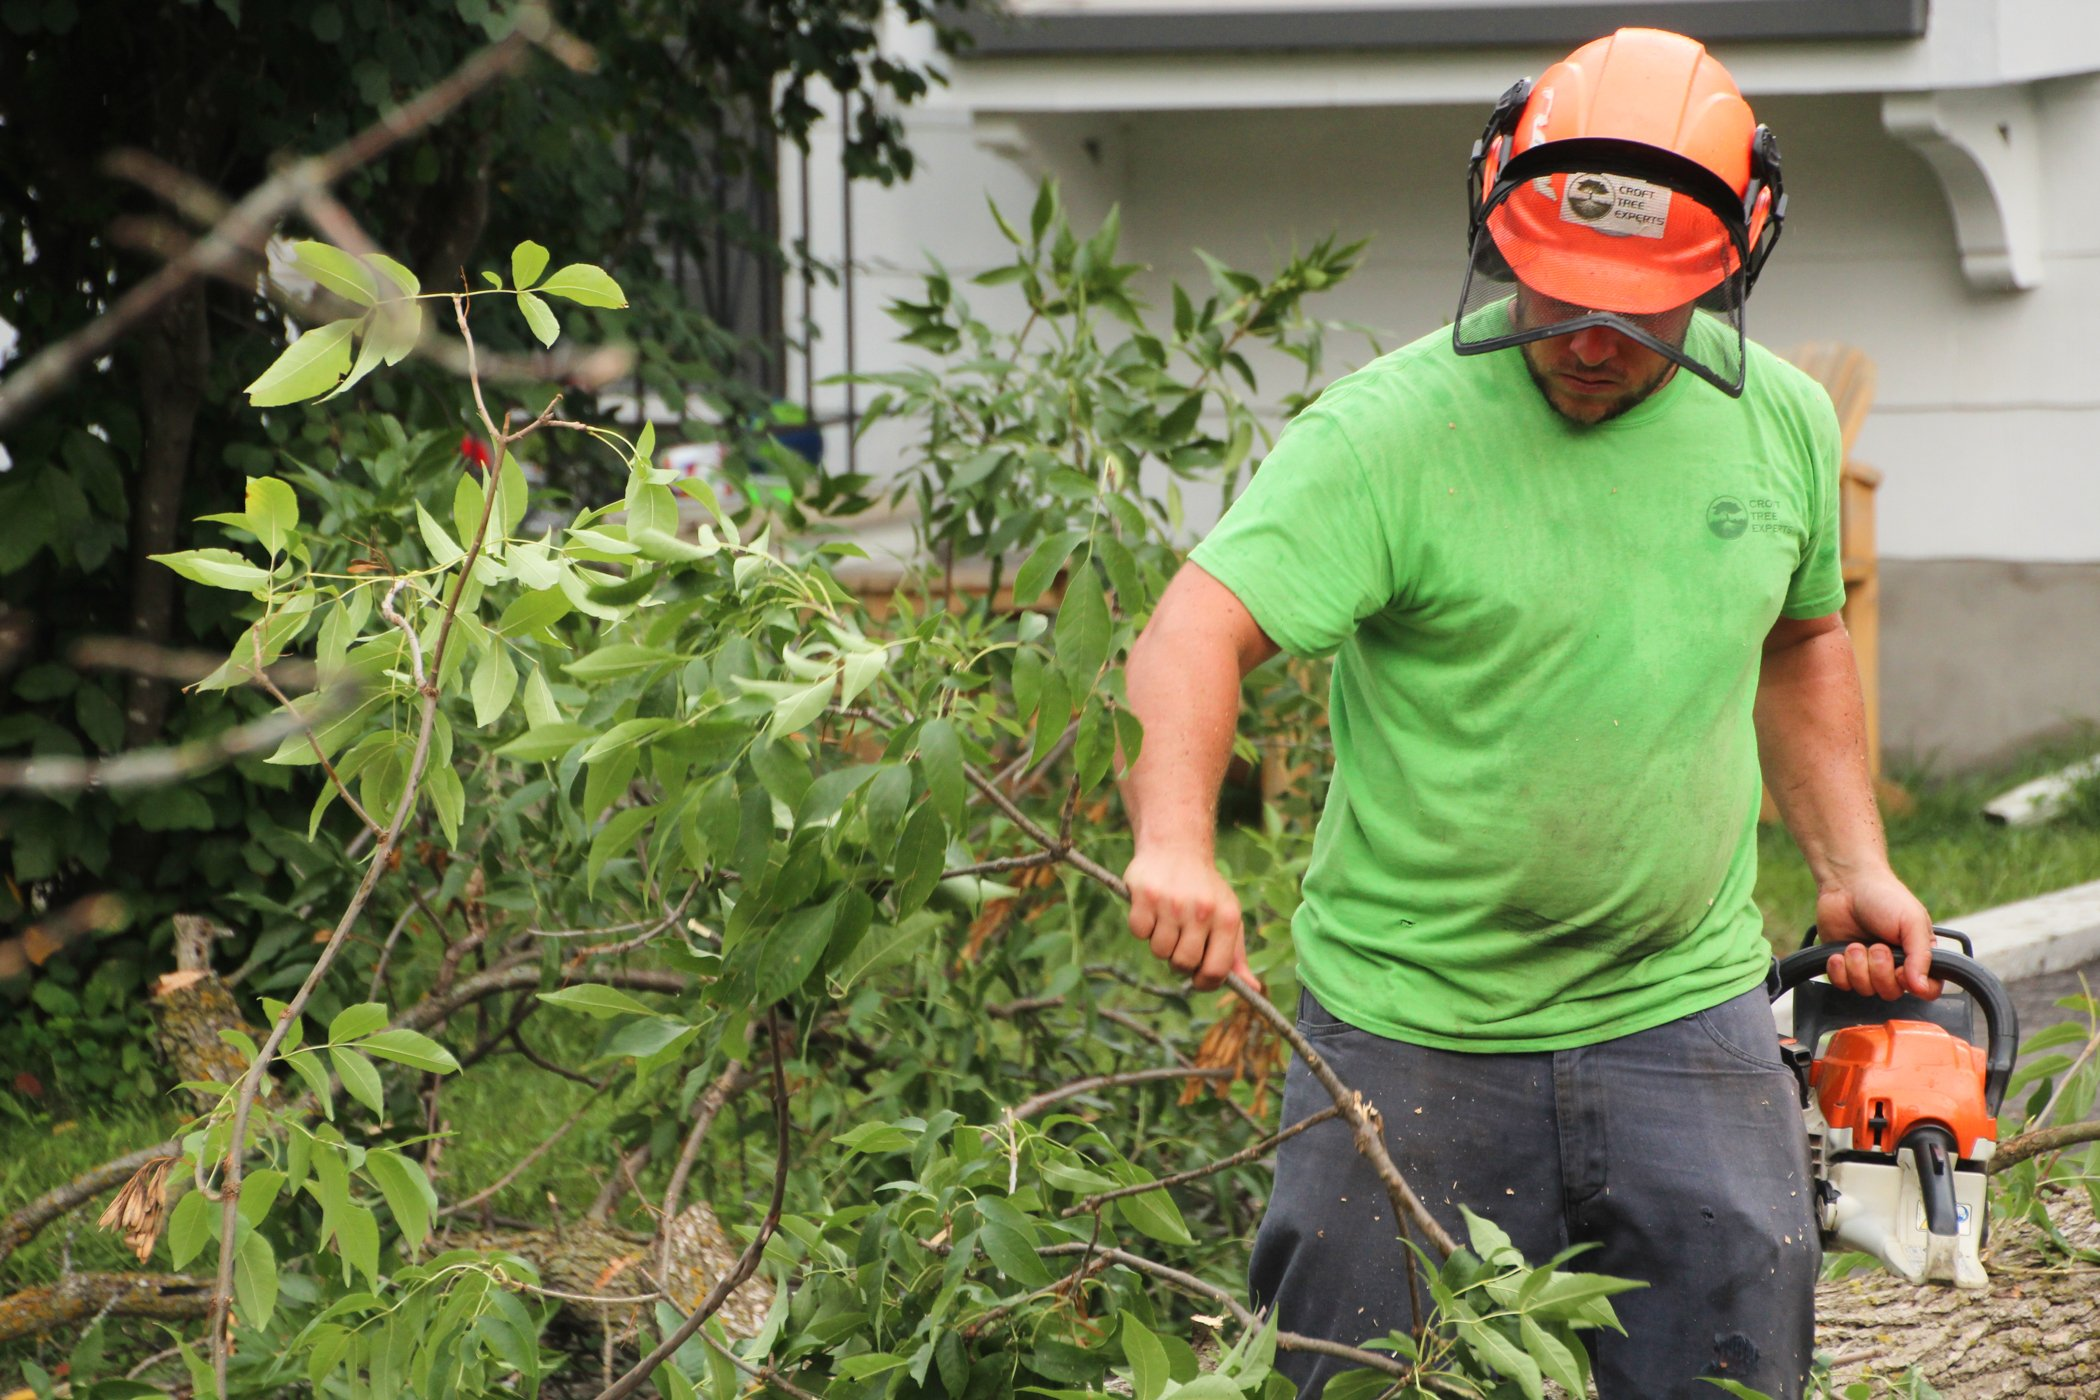 Tree Removal Expert Taking Unwanted Branch Away From Property